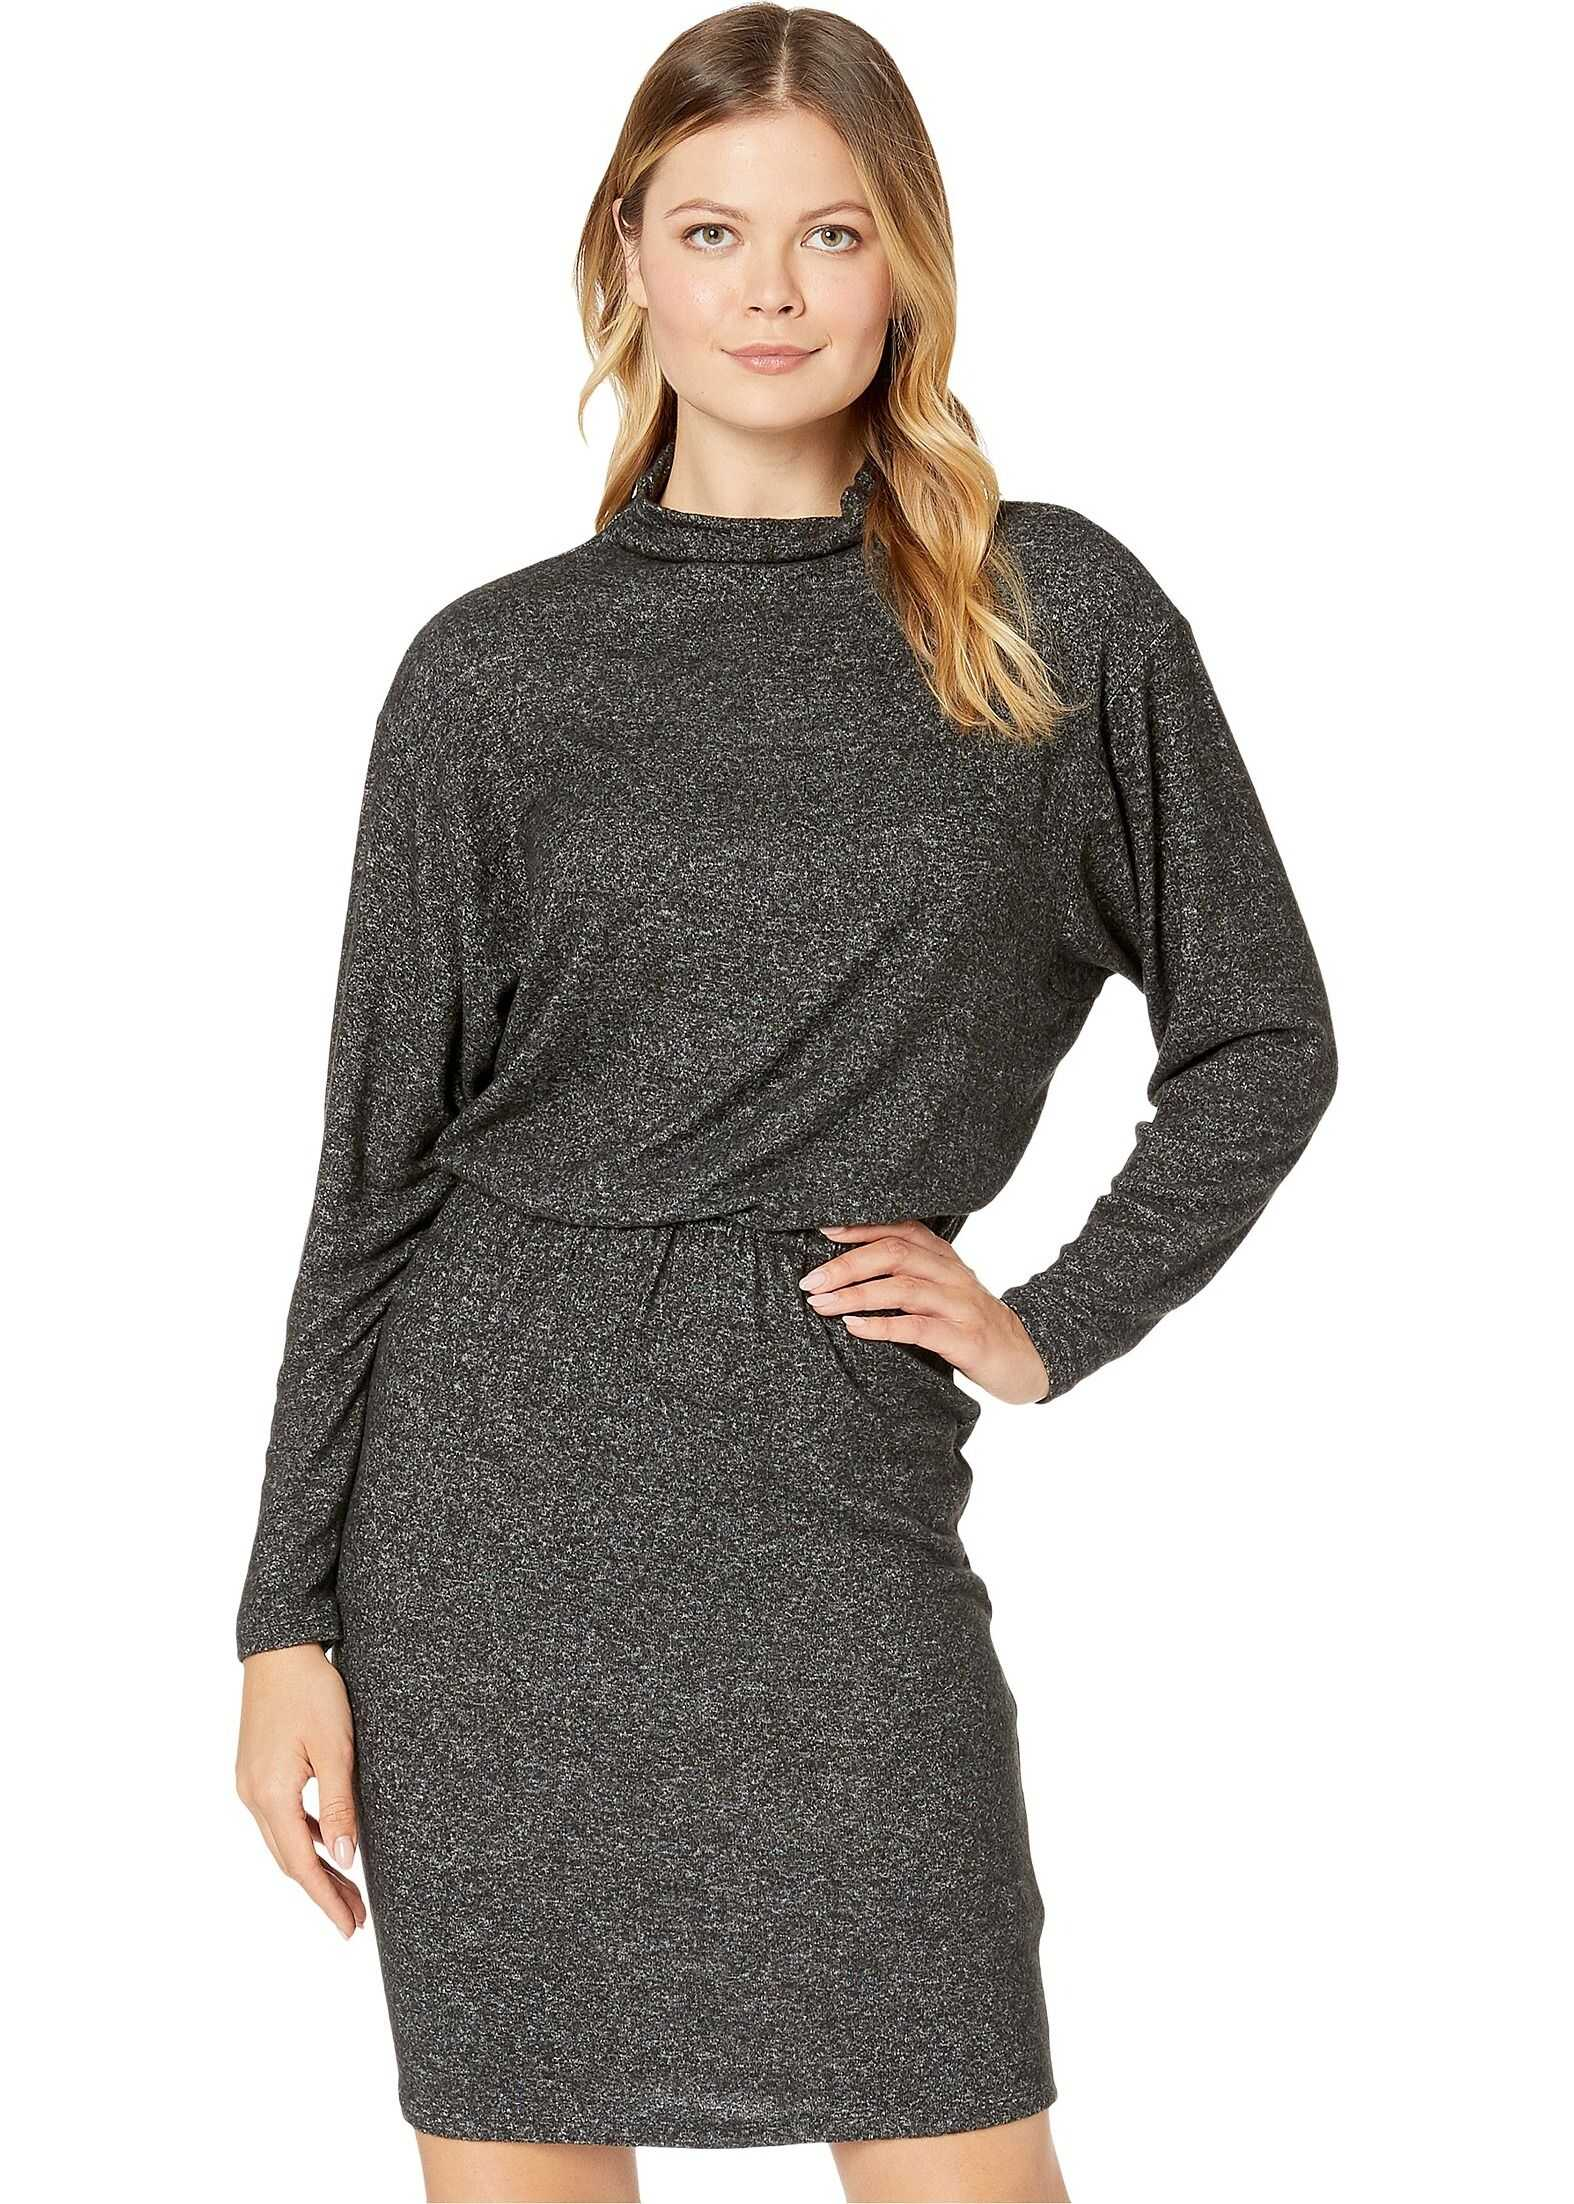 Kenneth Cole New York Ruched Detail Dress Charcoal Grey Heather